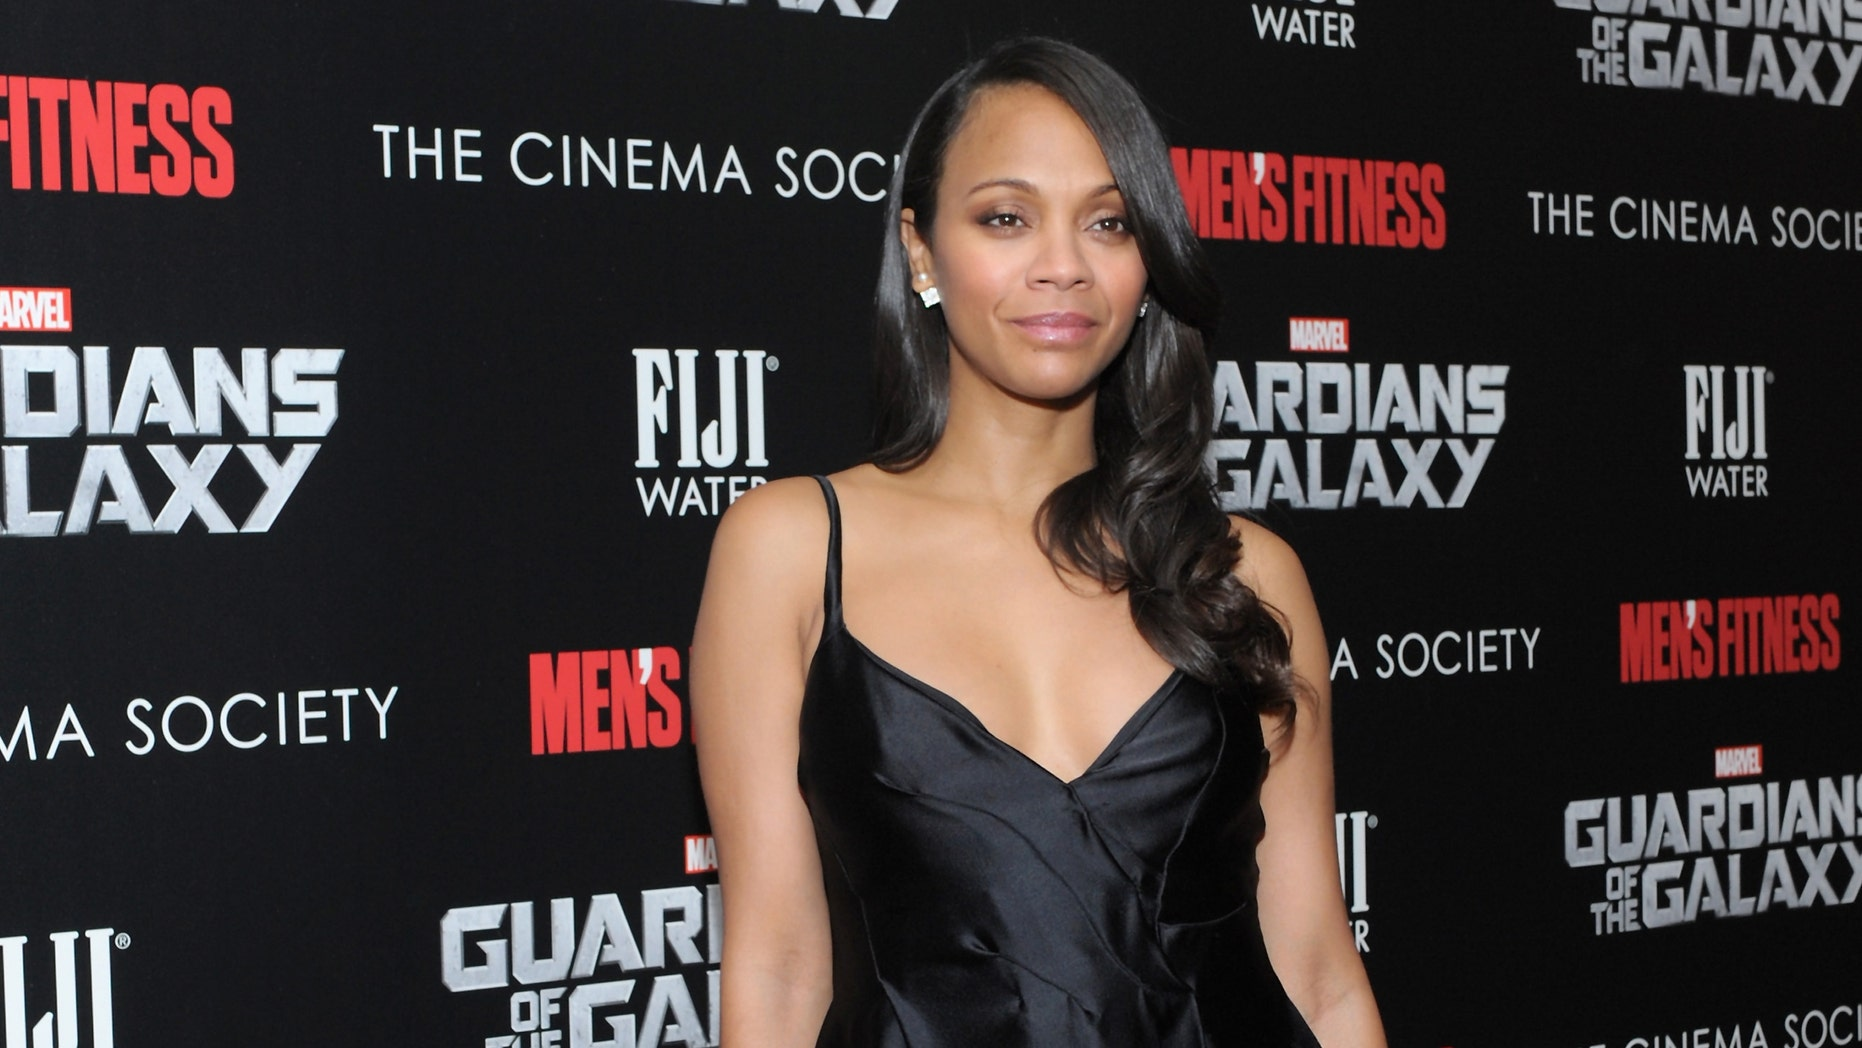 """NEW YORK, NY - JULY 29:  Actress Zoe Saldana attends The Cinema Society with Men's Fitness & FIJI Water host a screening of """"Guardians of the Galaxy"""" on July 29, 2014 in New York City.  (Photo by Andrew Toth/Getty Images for FIJI Water)"""